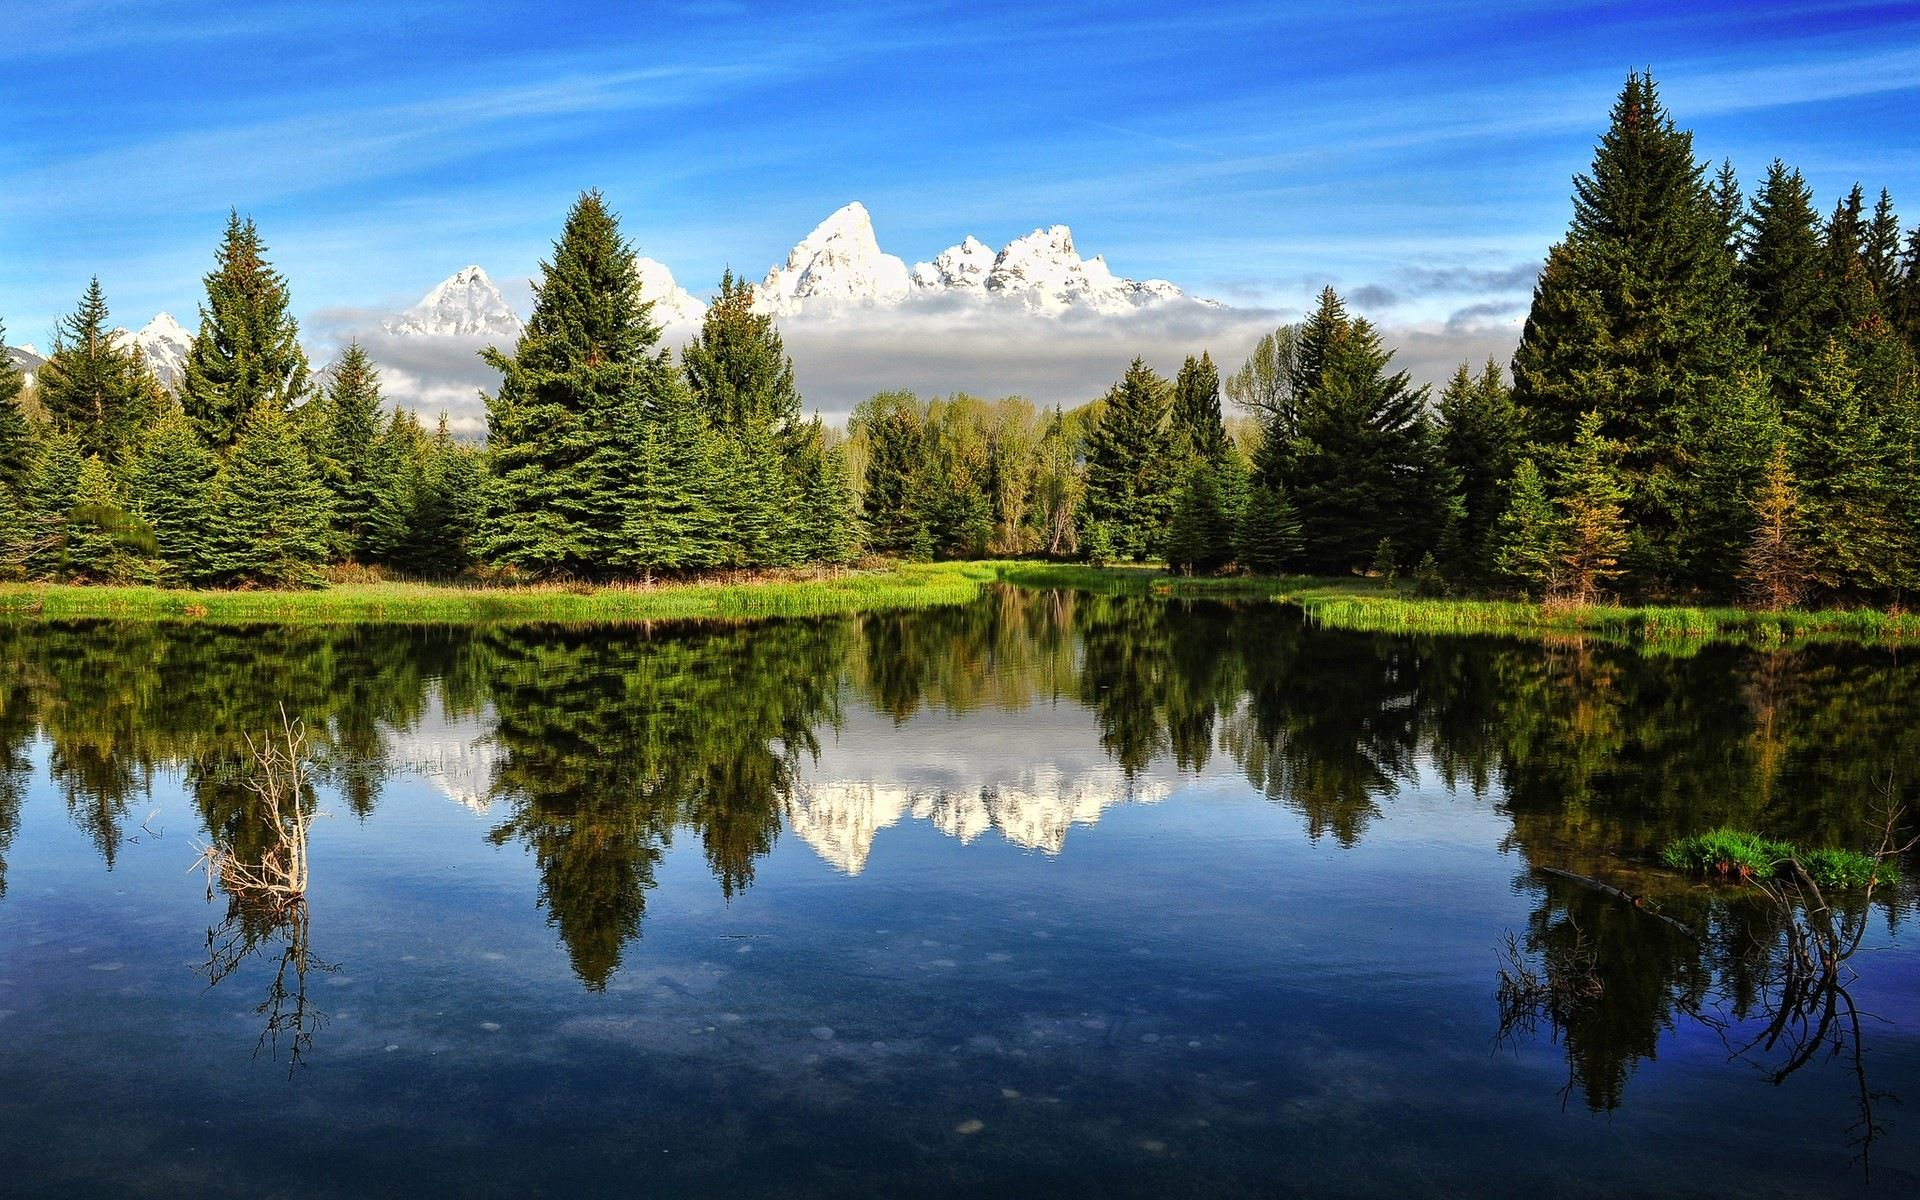 Mountains Water Clouds Natural Beauty Landscape Hd Wallpapers 1